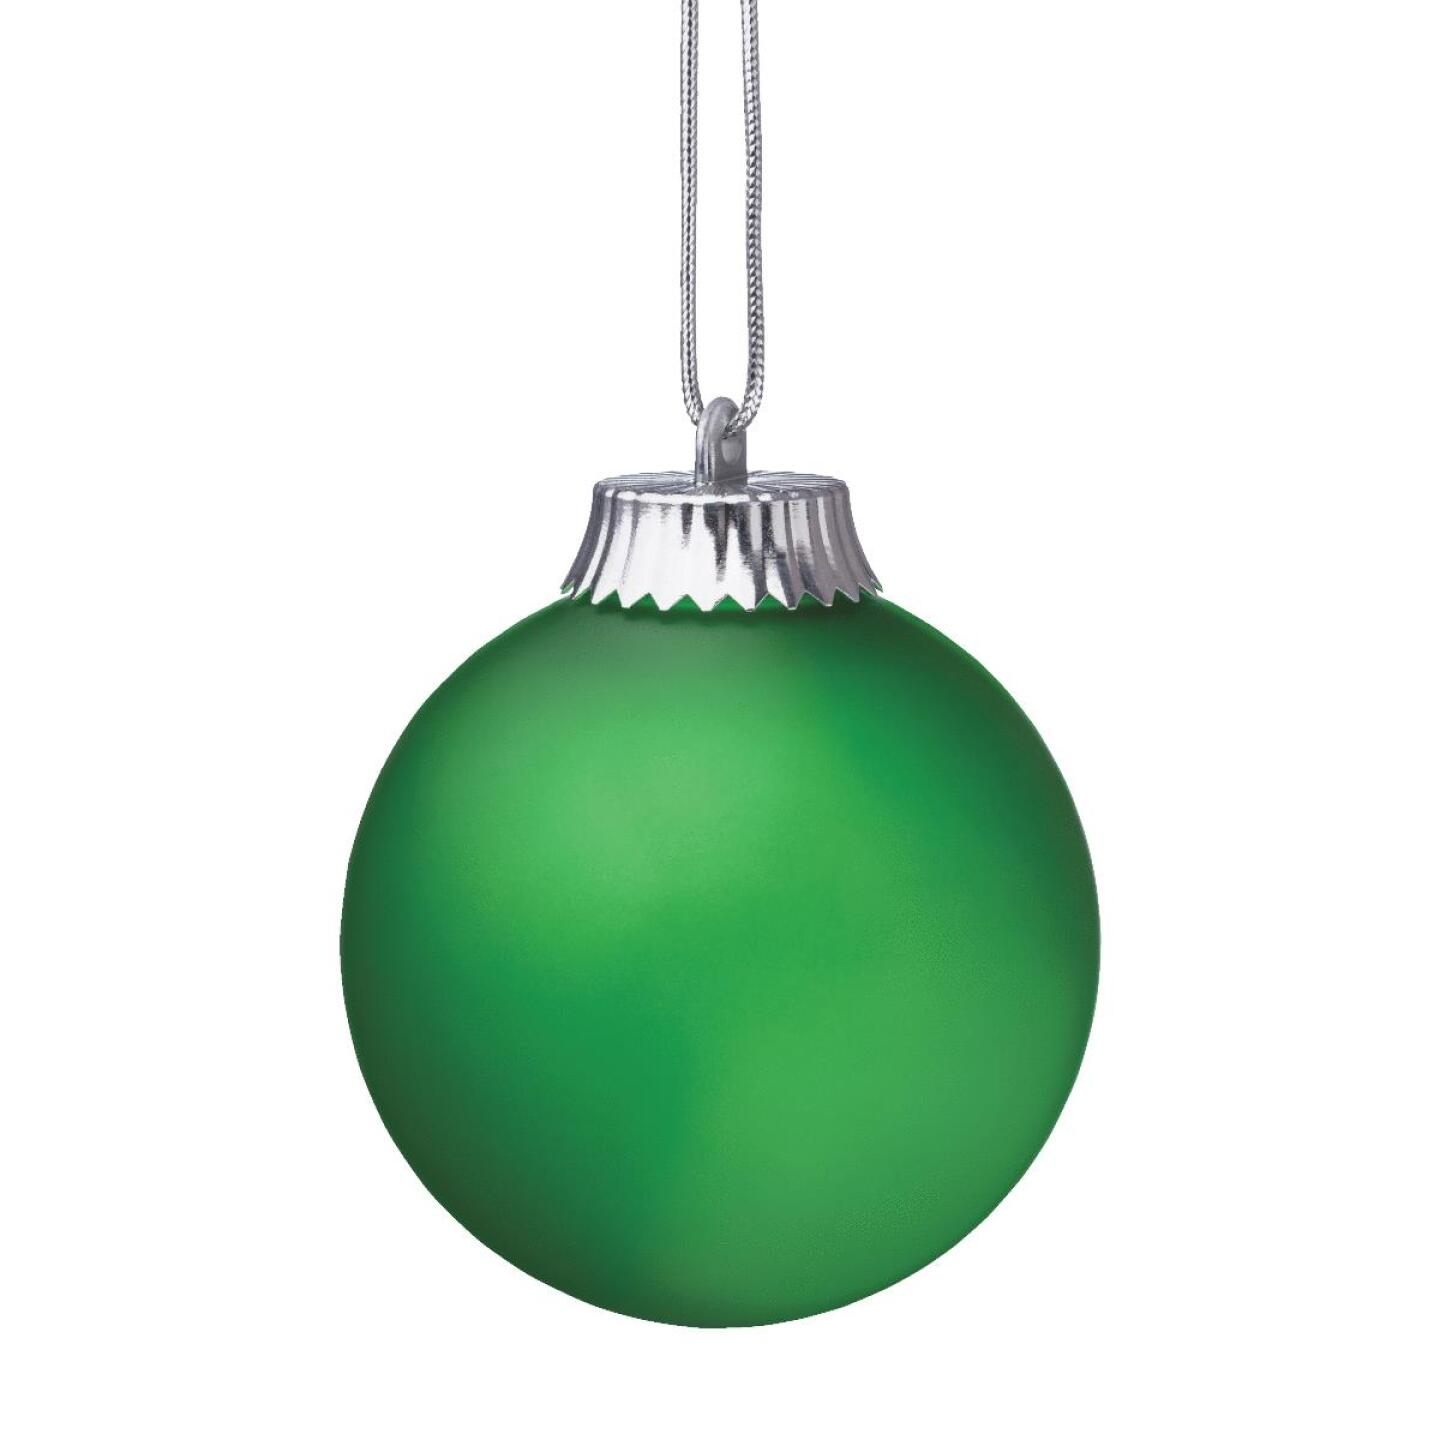 Xodus 5 In. Shatter Resistant LED Outdoor Christmas Ornament Image 1